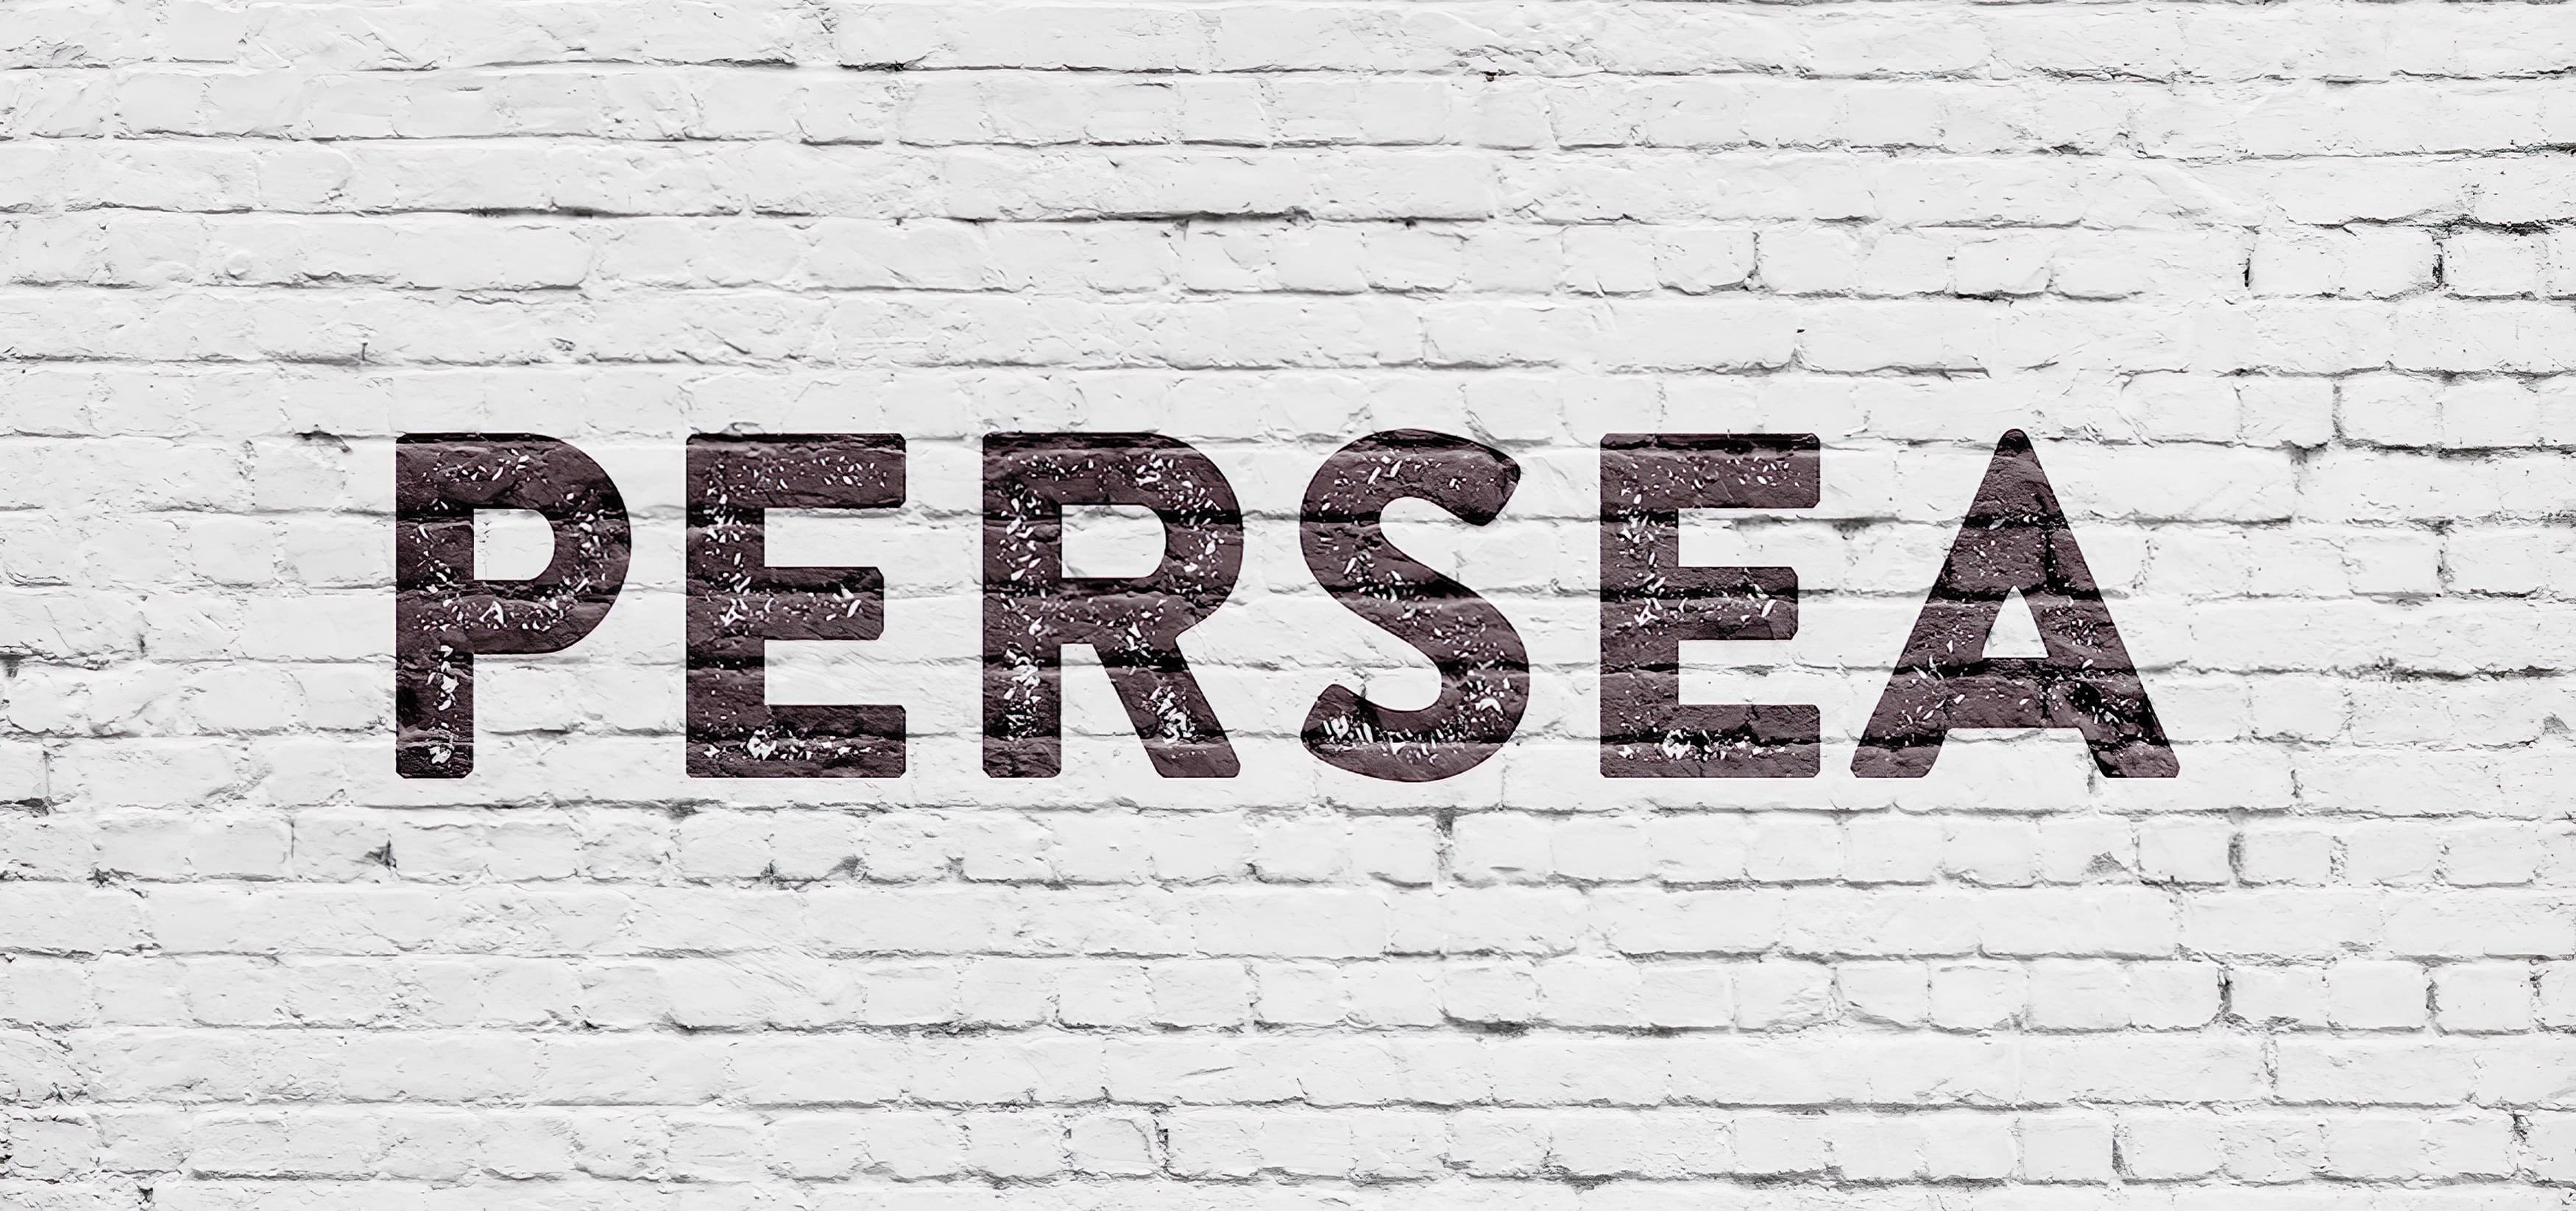 Persea, a mixed-use retail and residential development in Vista, California. Branding and Logo Design.